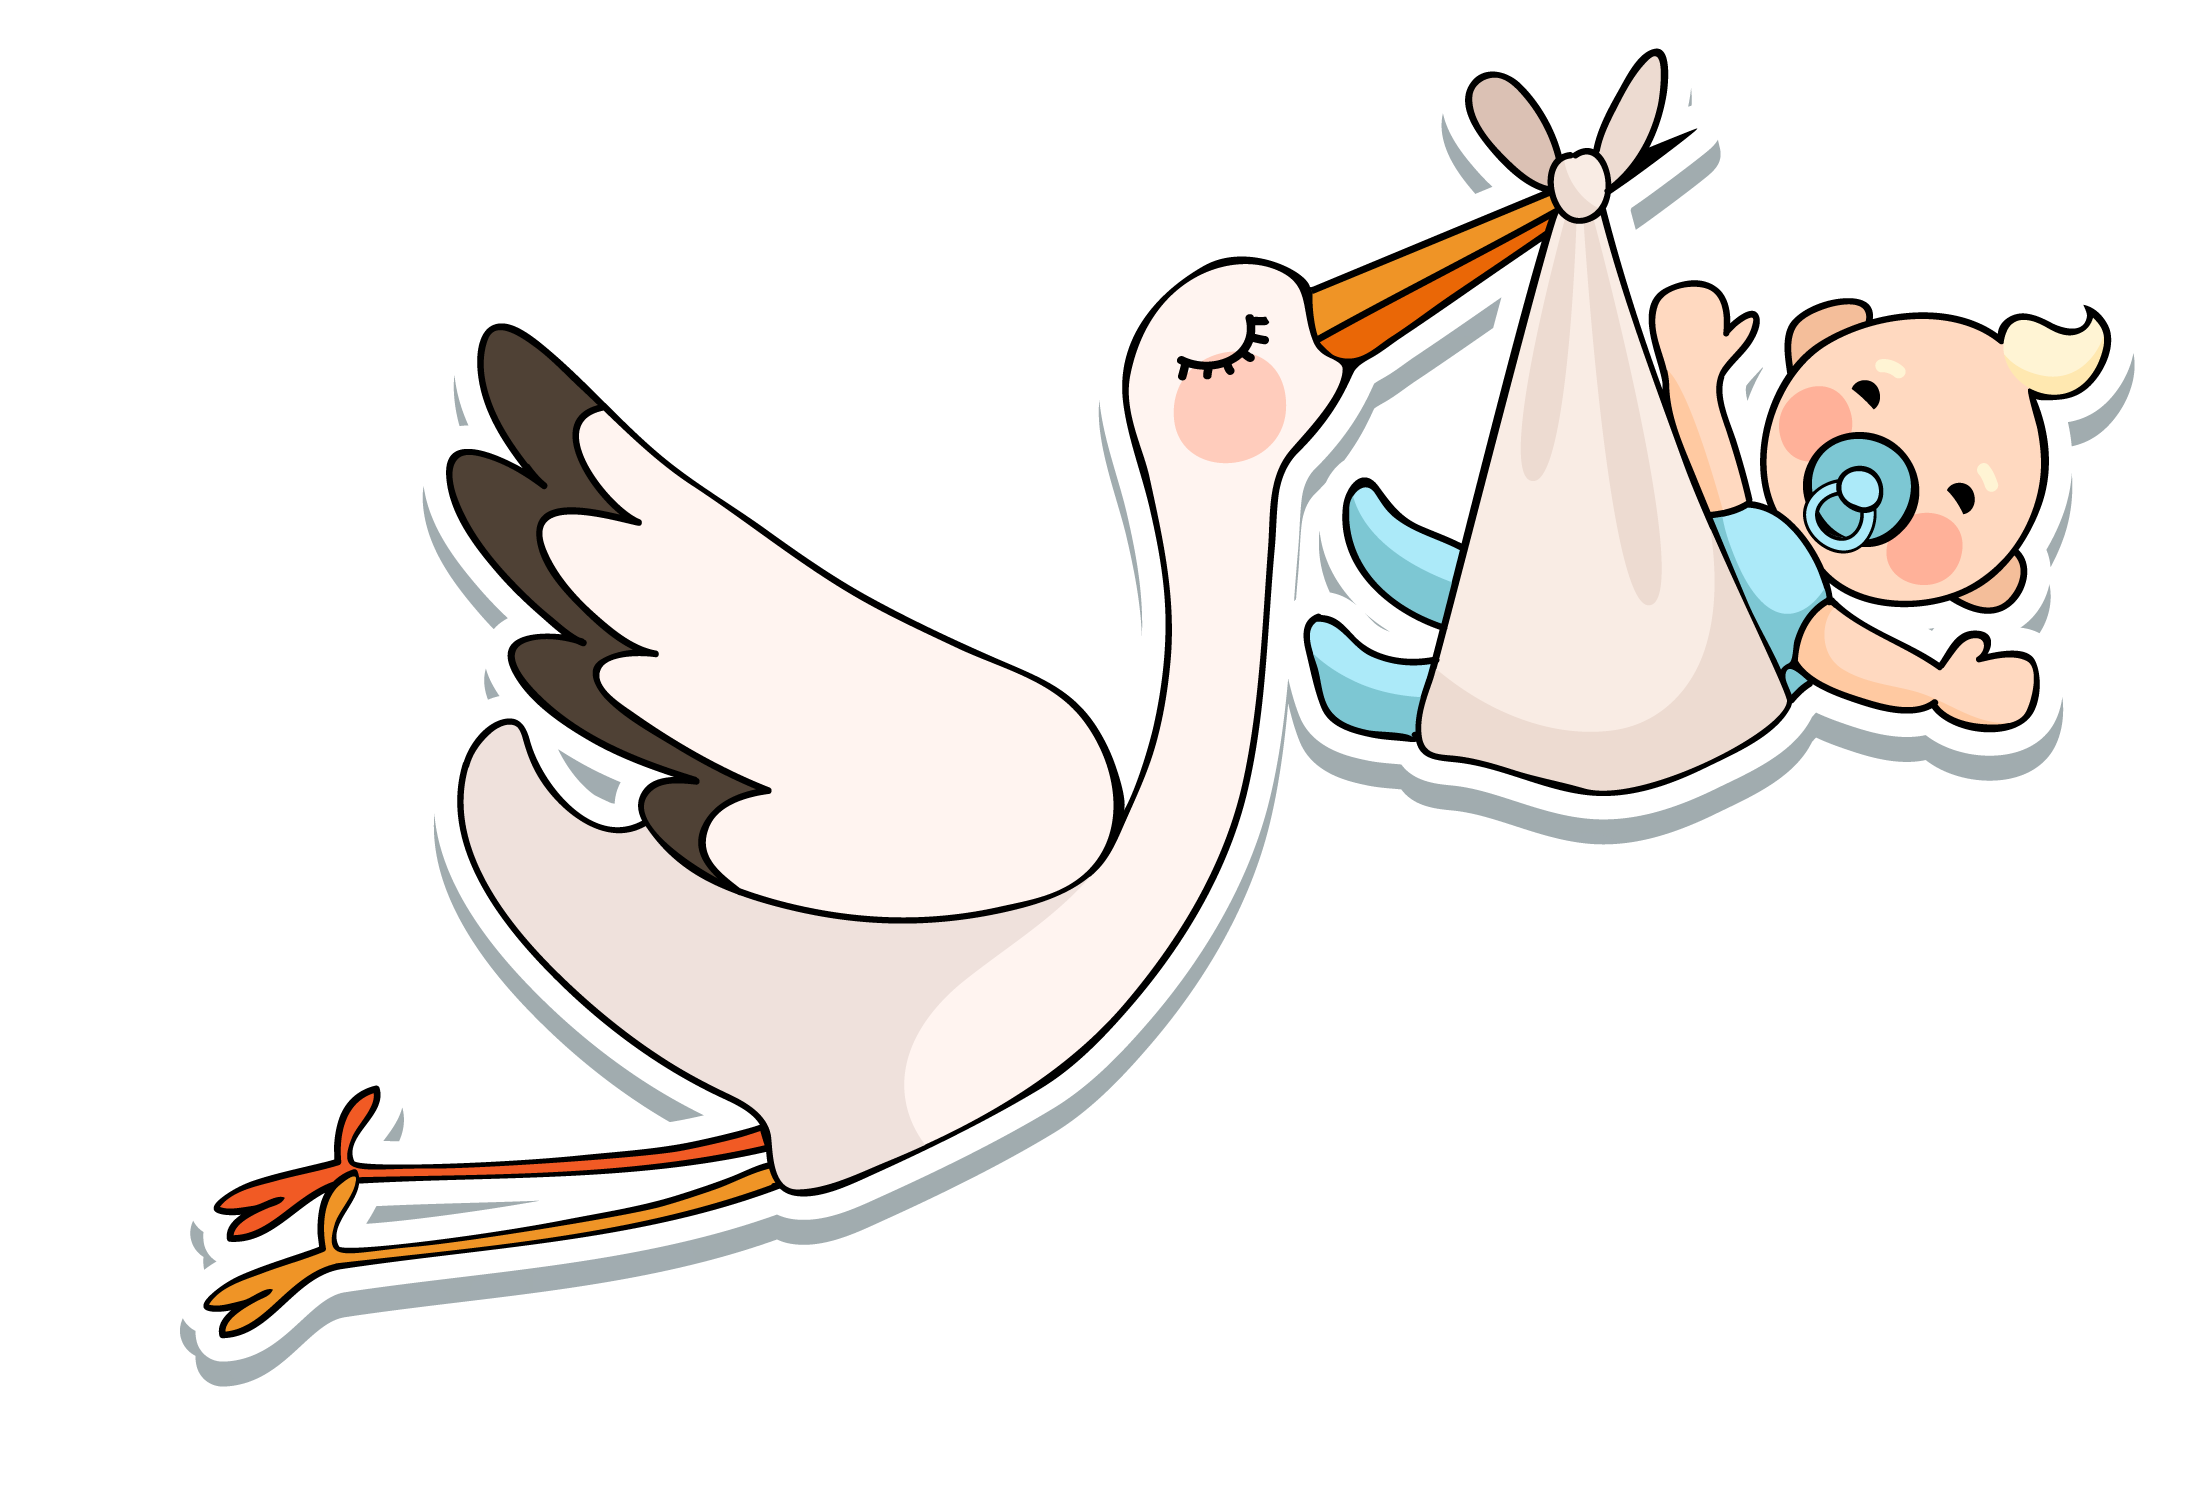 Shower vector animated. White stork infant baby